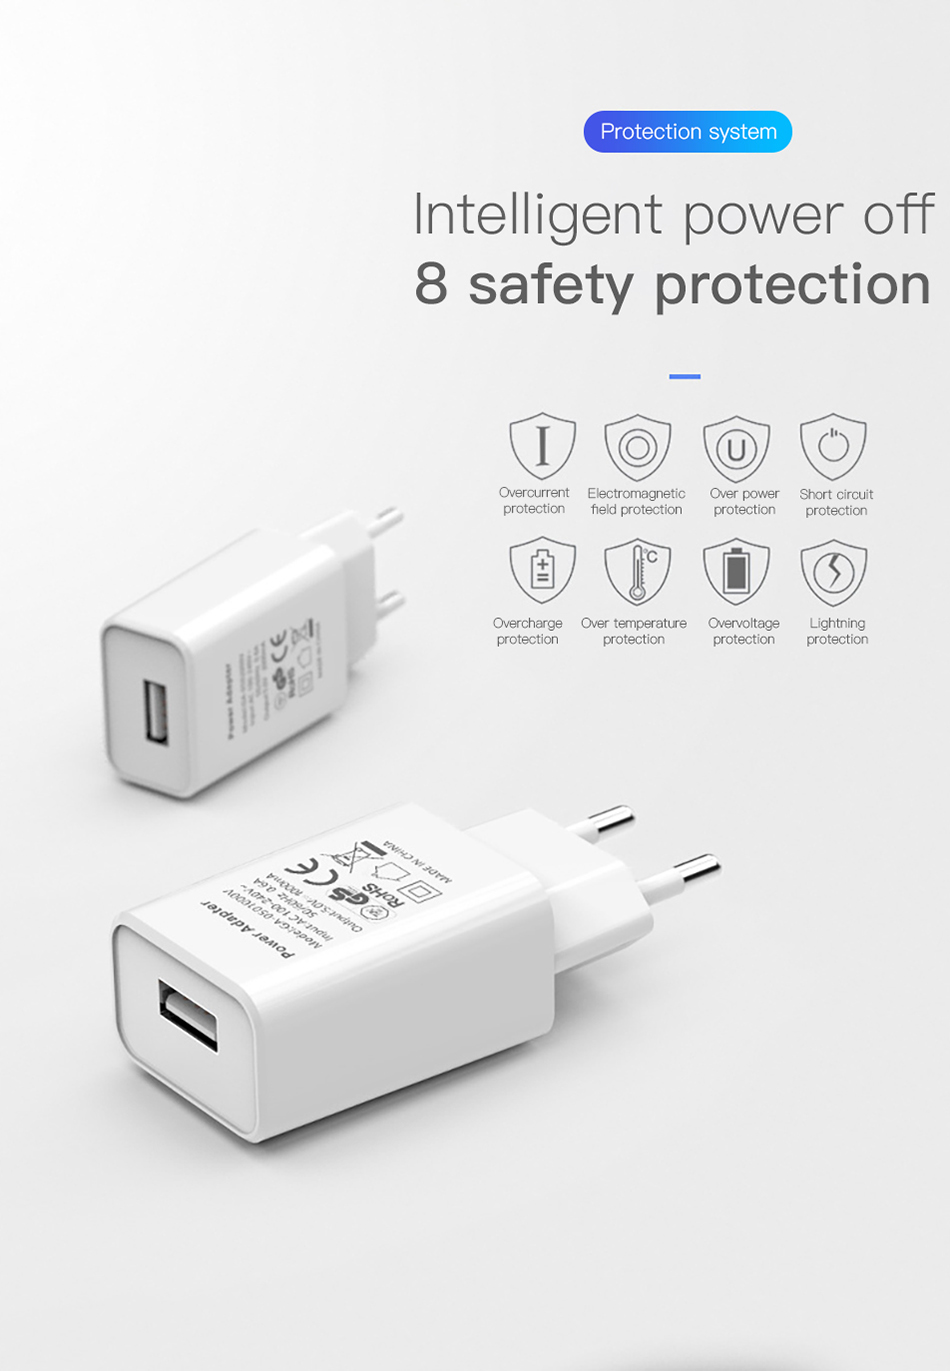 !ACCEZZ USB Charger 5V 1A Adapter For iphone 7 8 XS EU Plug Mobile Phone Wall Travel Charger Universal For Samsung S8 S9 Xiaomi (5)